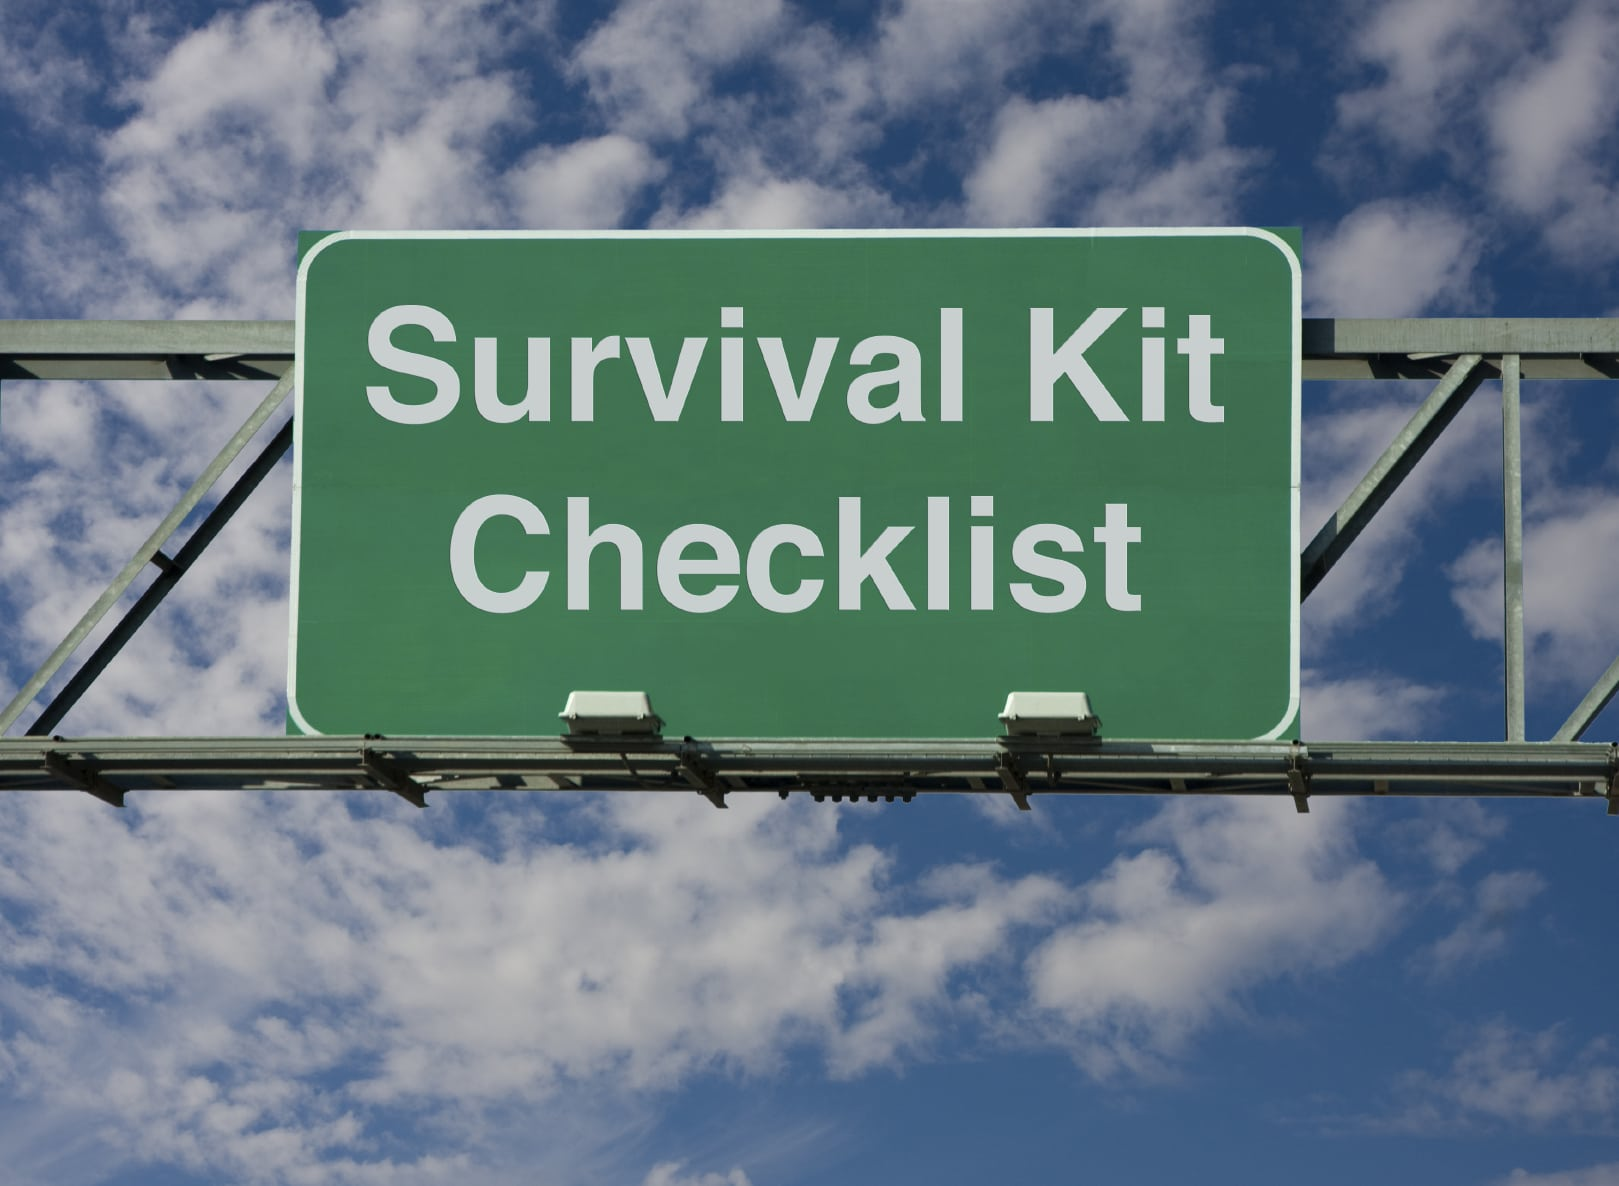 Survival Kit Checklist Stock Photo